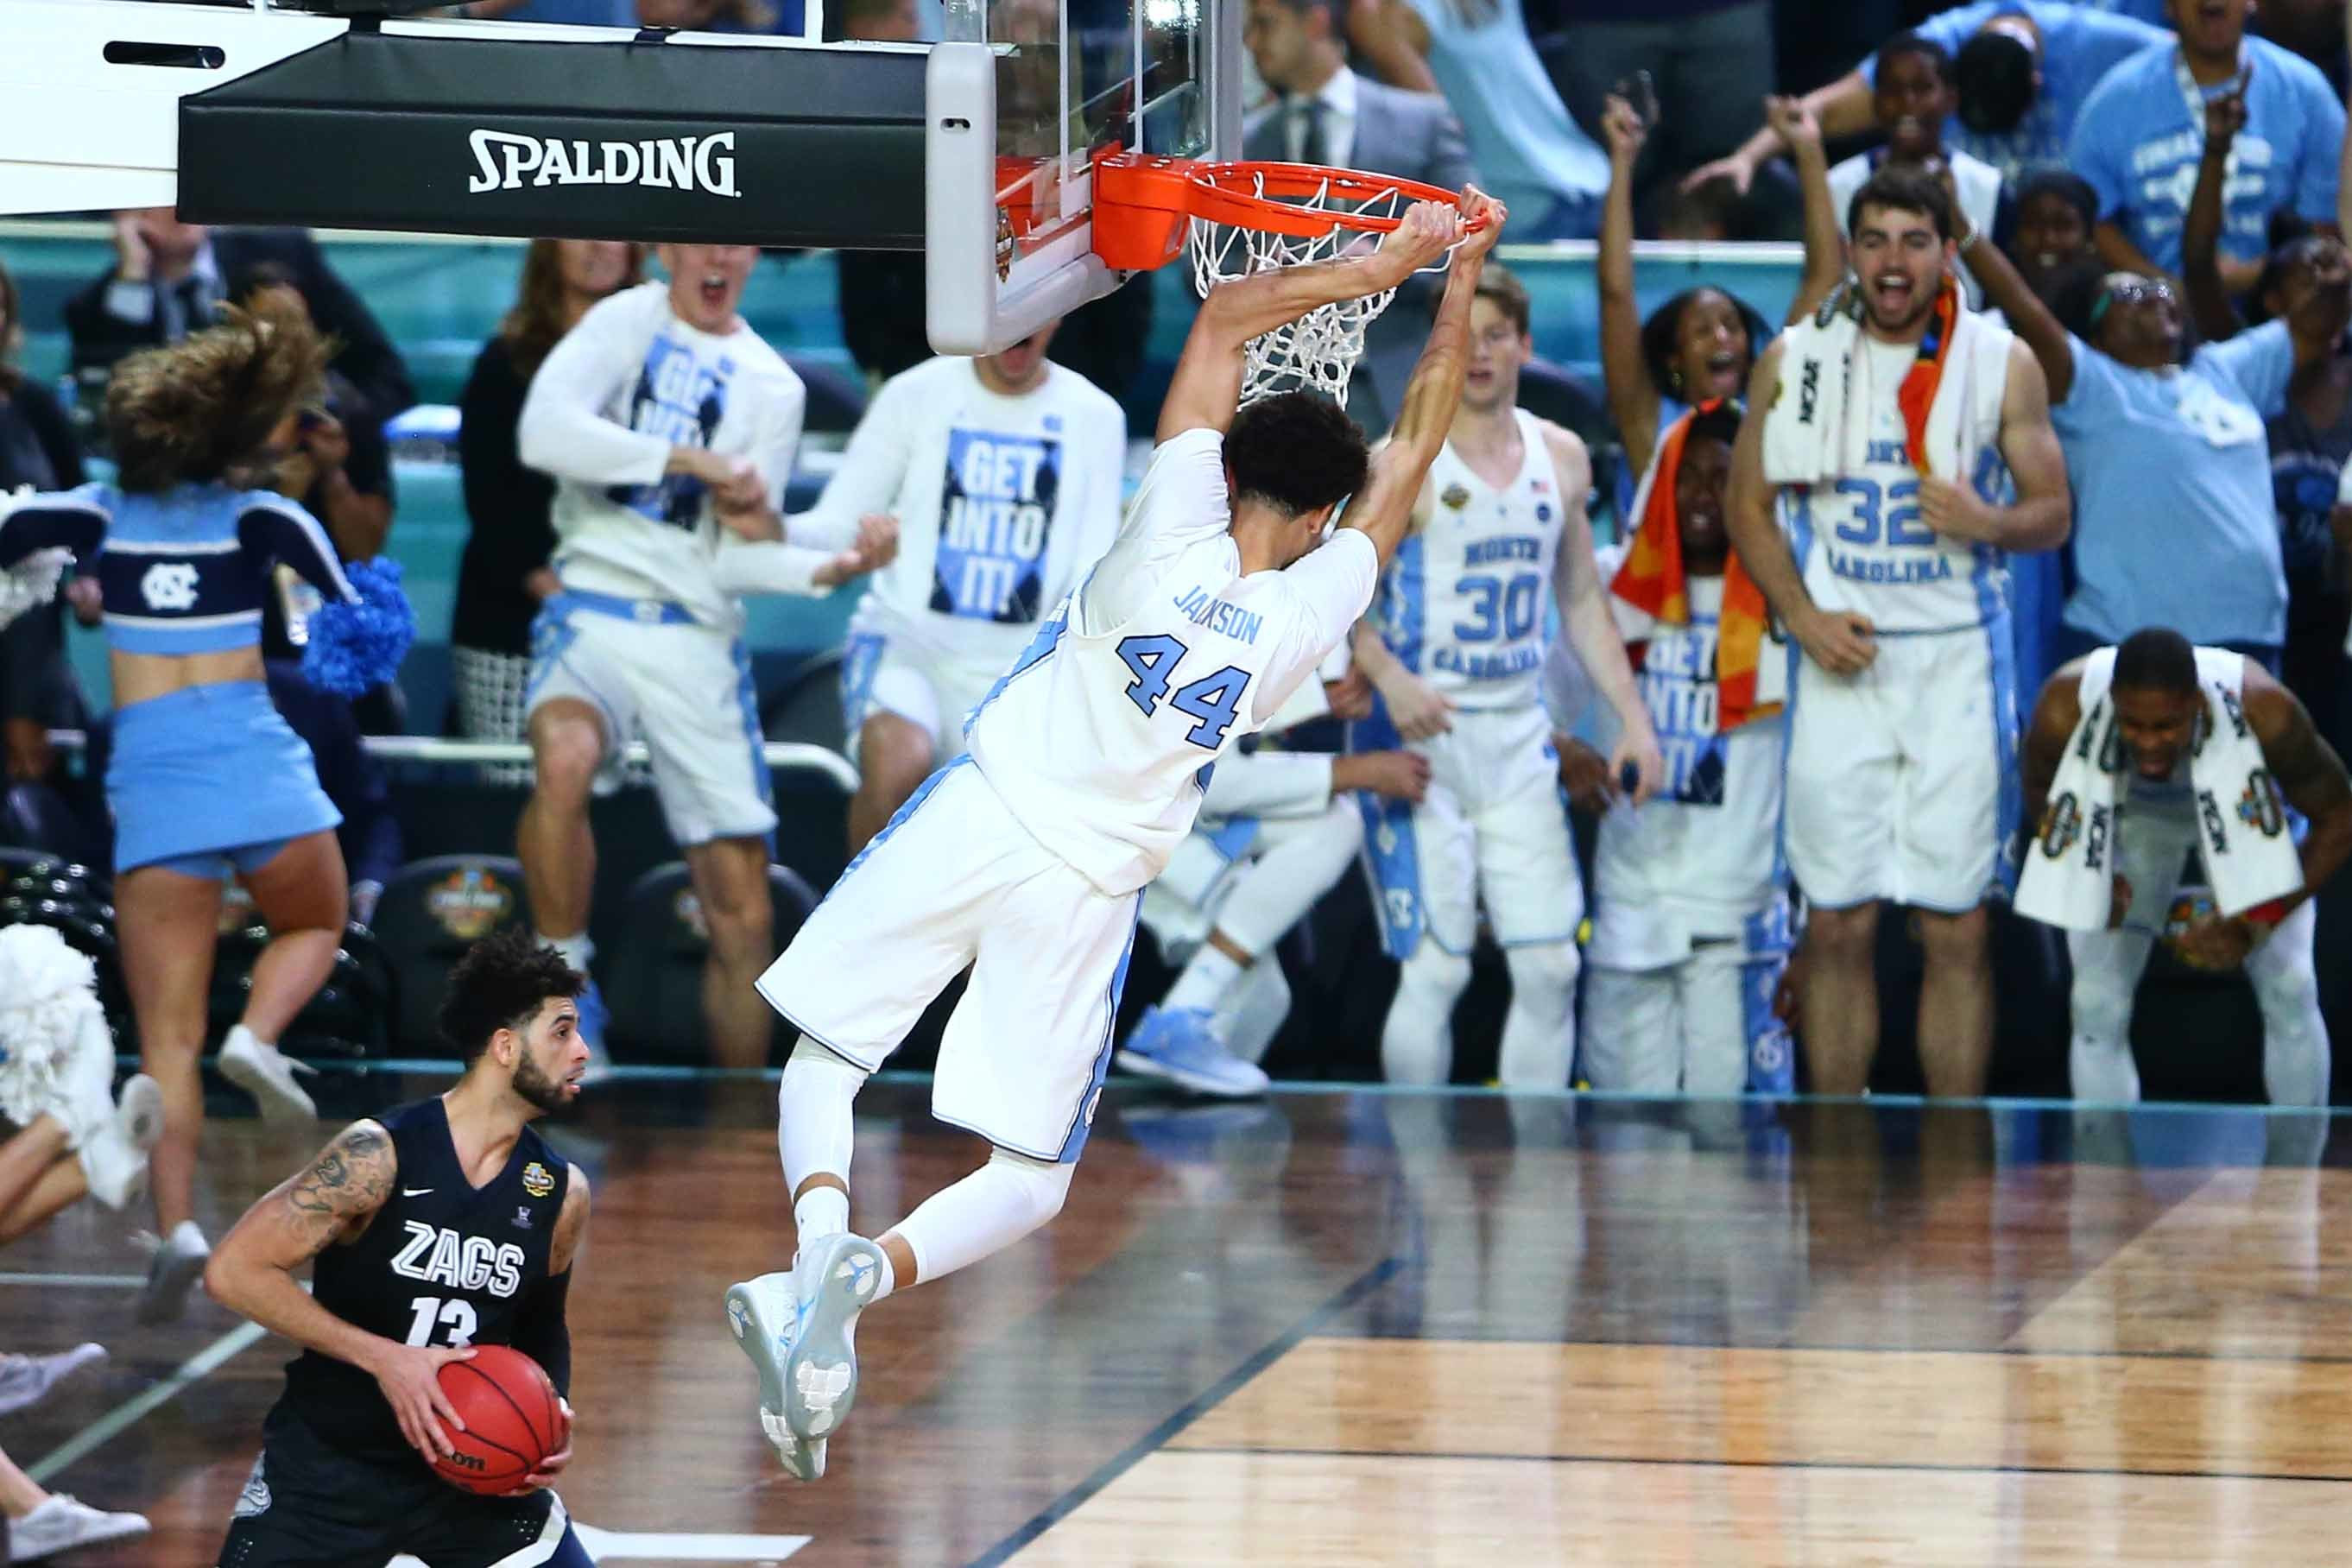 Highlights from the national championship gonzaga vs north carolina - Unc Holds Off Gonzaga 71 65 To Win 6th Ncaa Championship Bleacher Report